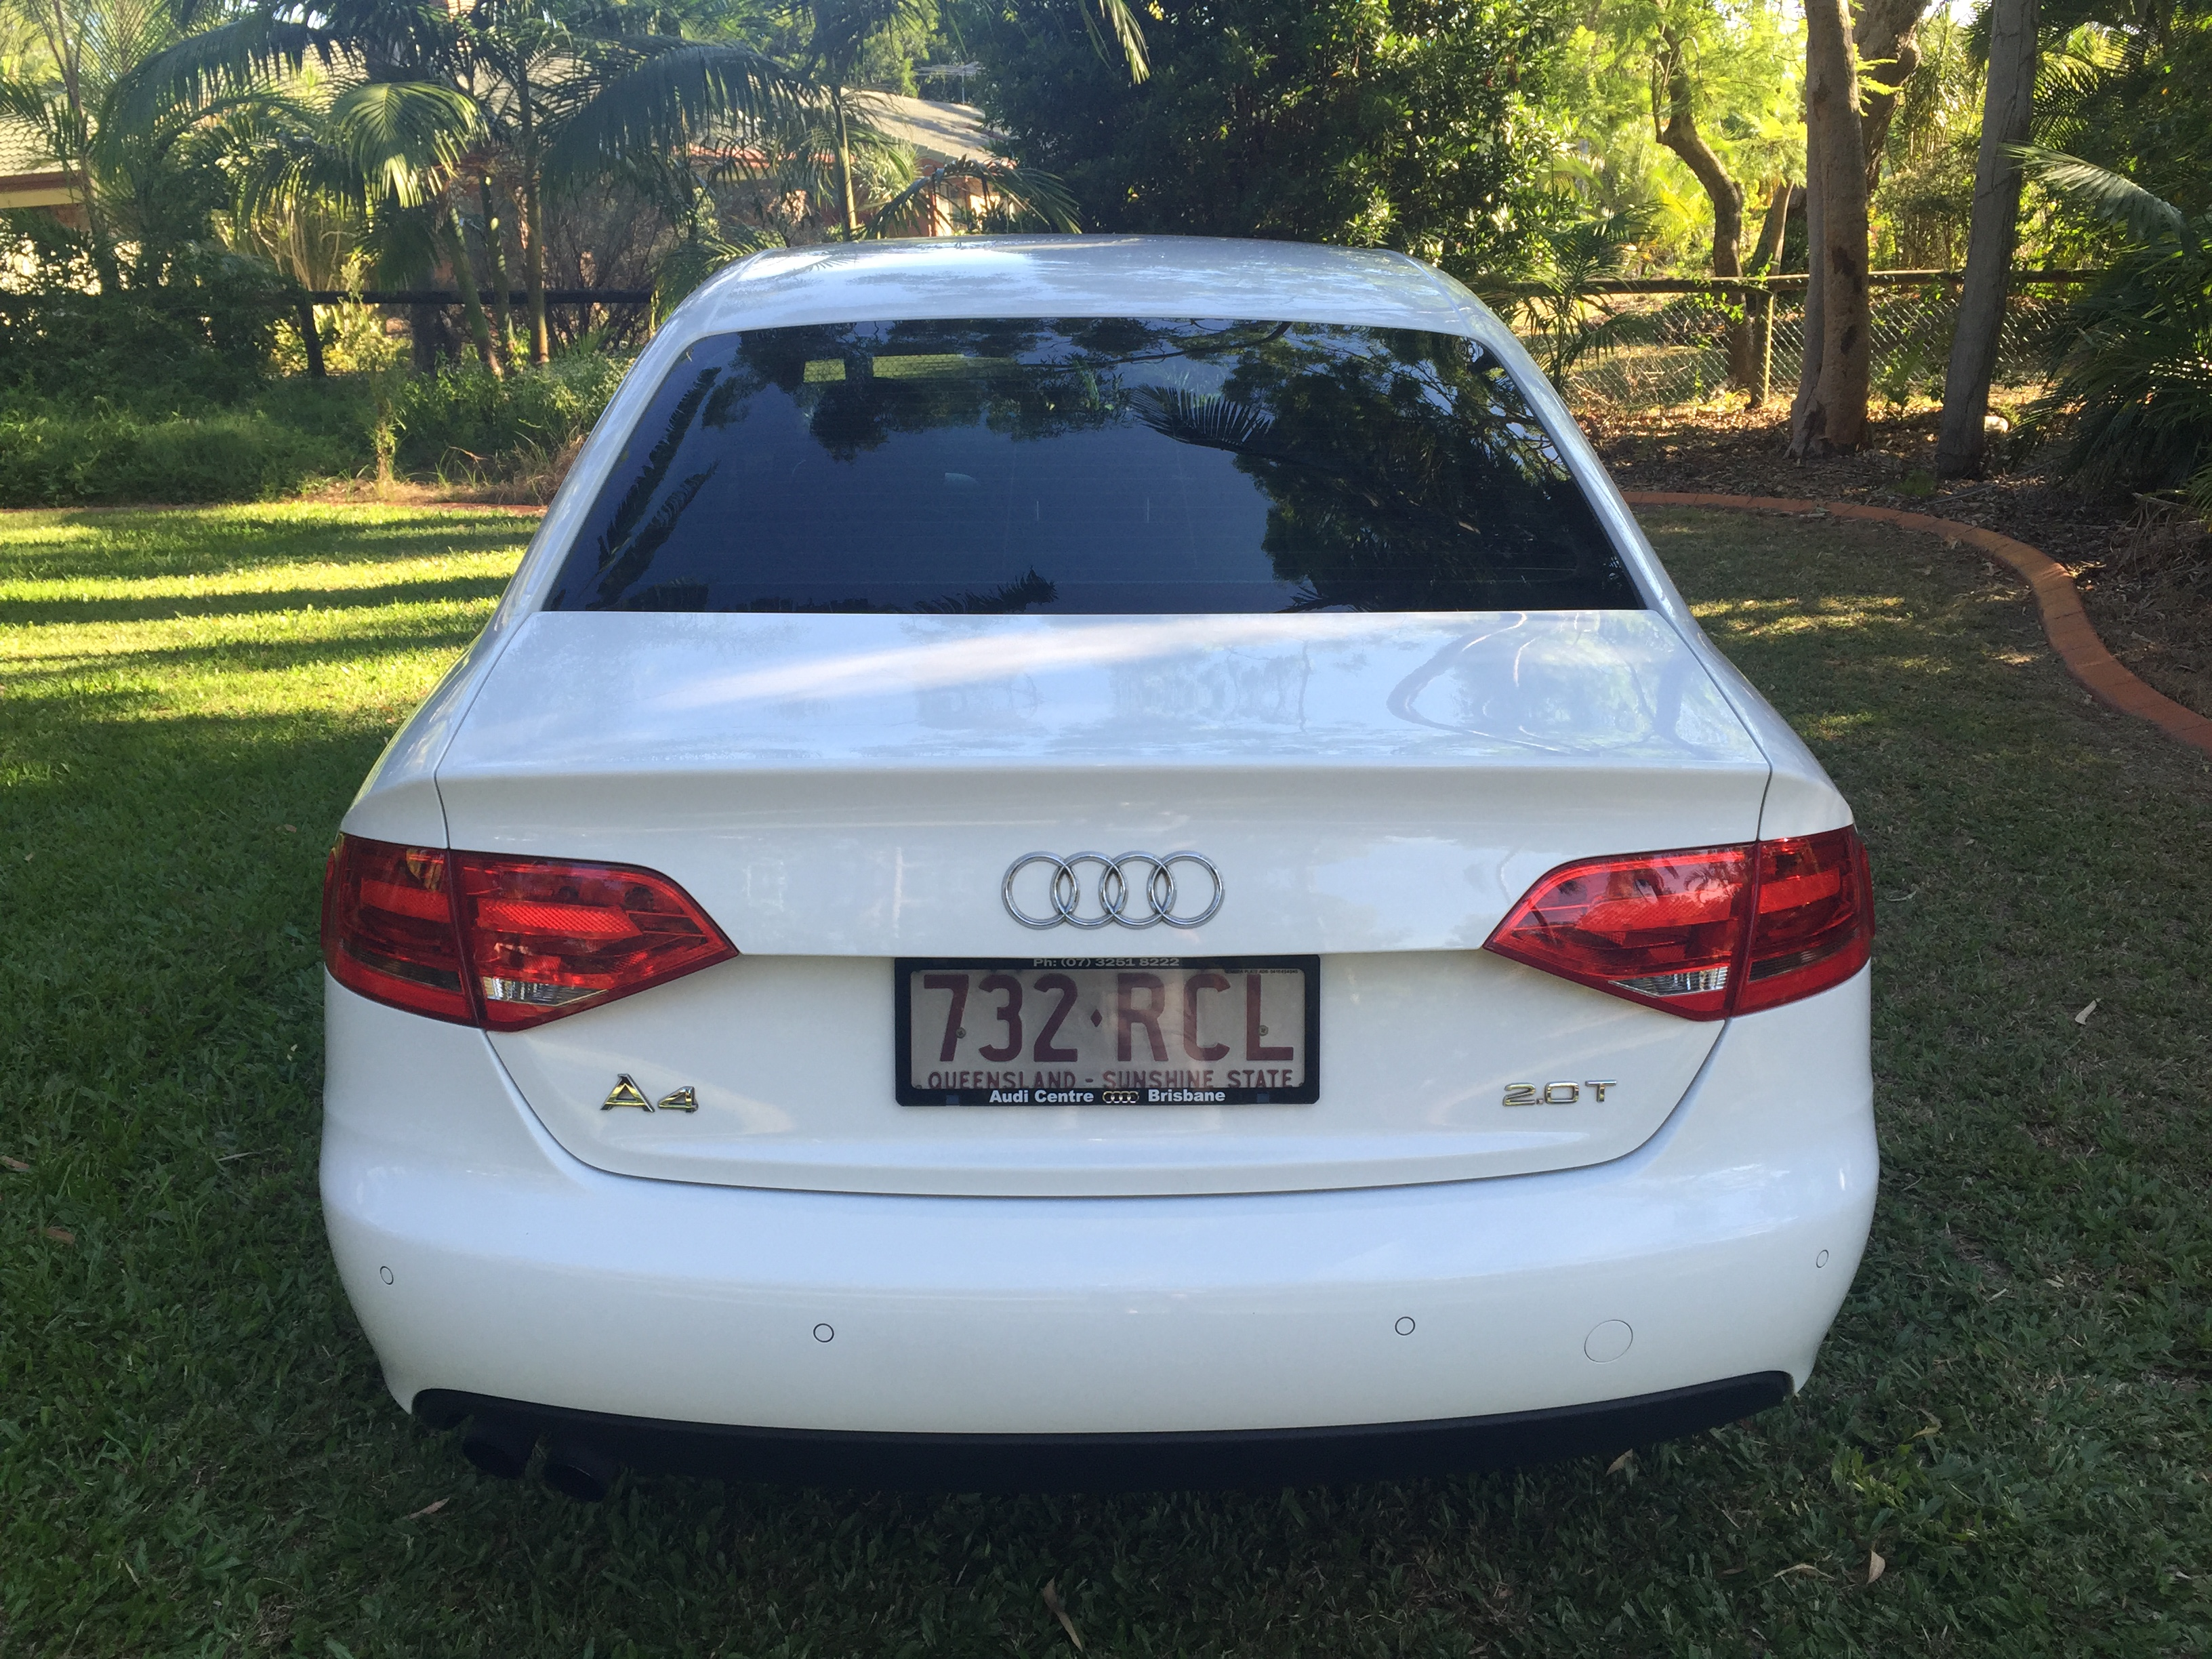 2010 audi a4 2 0 tfsi b8  8k  car sales qld brisbane audi rs3 wheels audi rs3 wheels audi rs3 wheels audi rs3 wheels